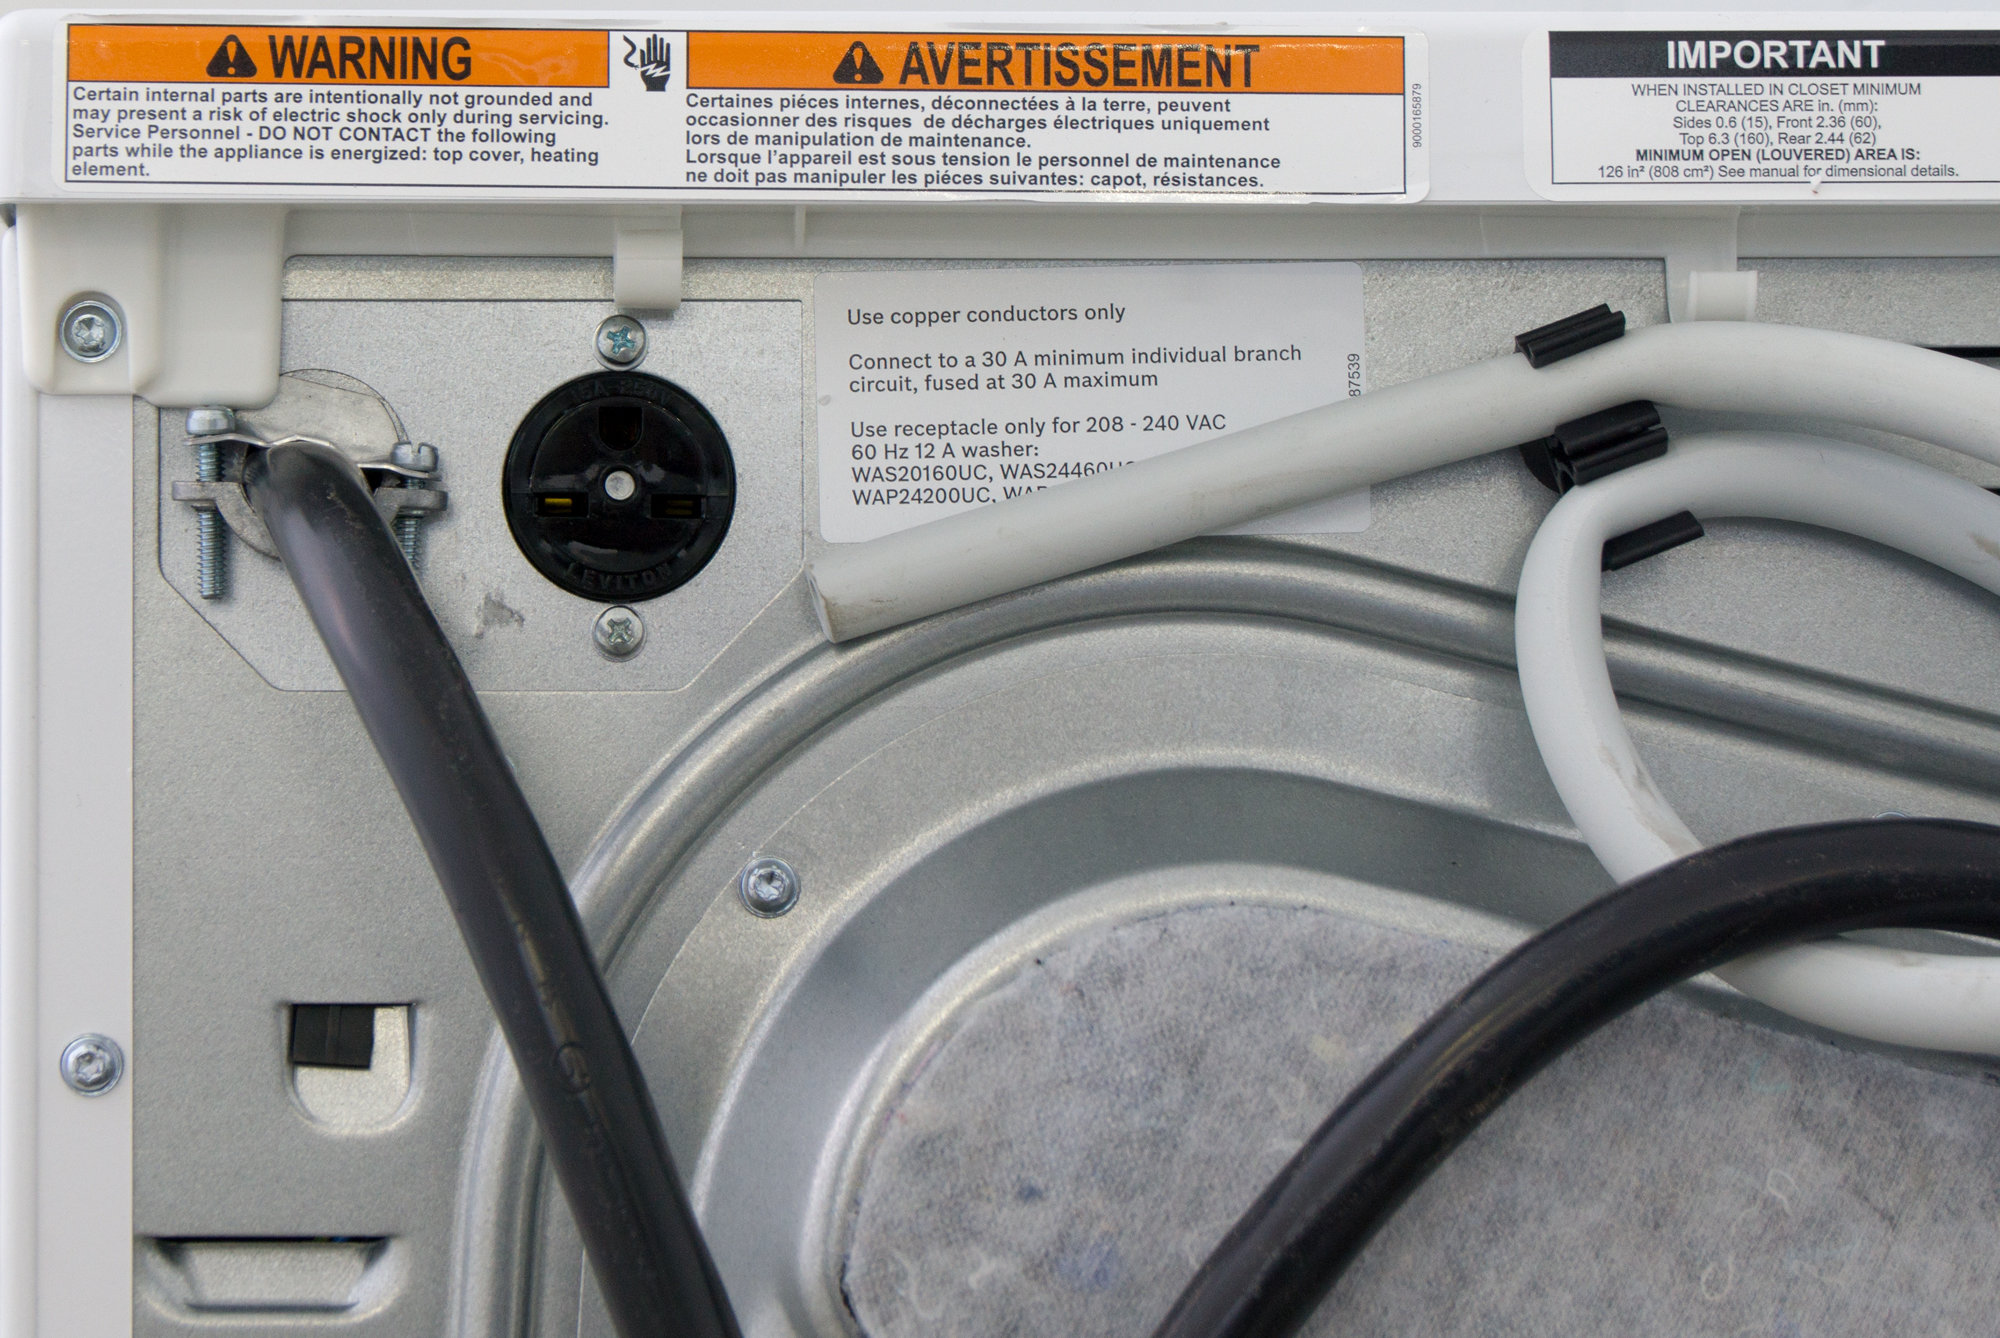 The Ascenta washer needs to plug into the dryer to work.